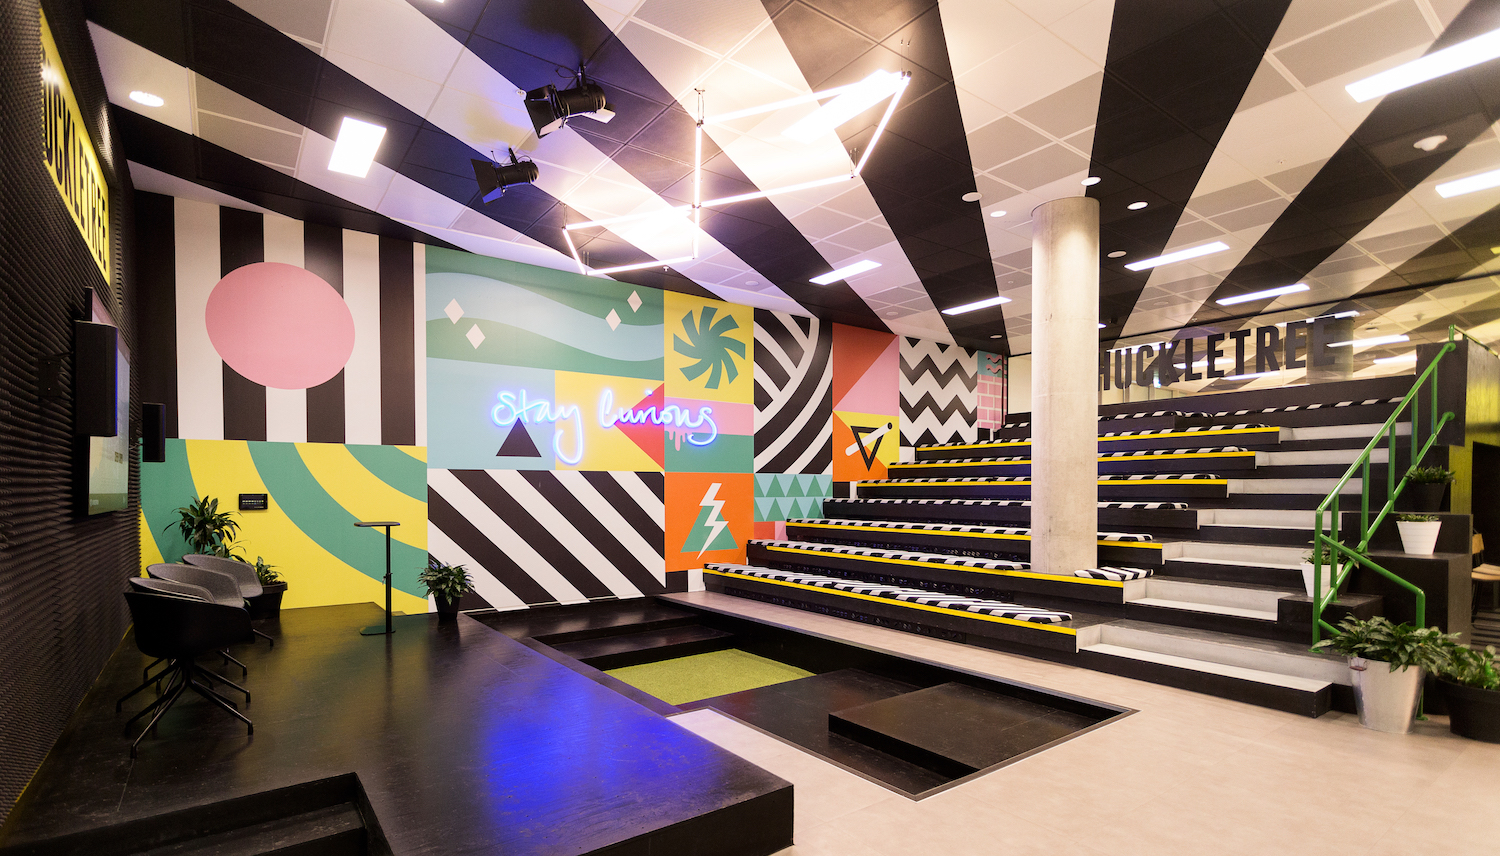 Huckletree Auditorium West.jpg